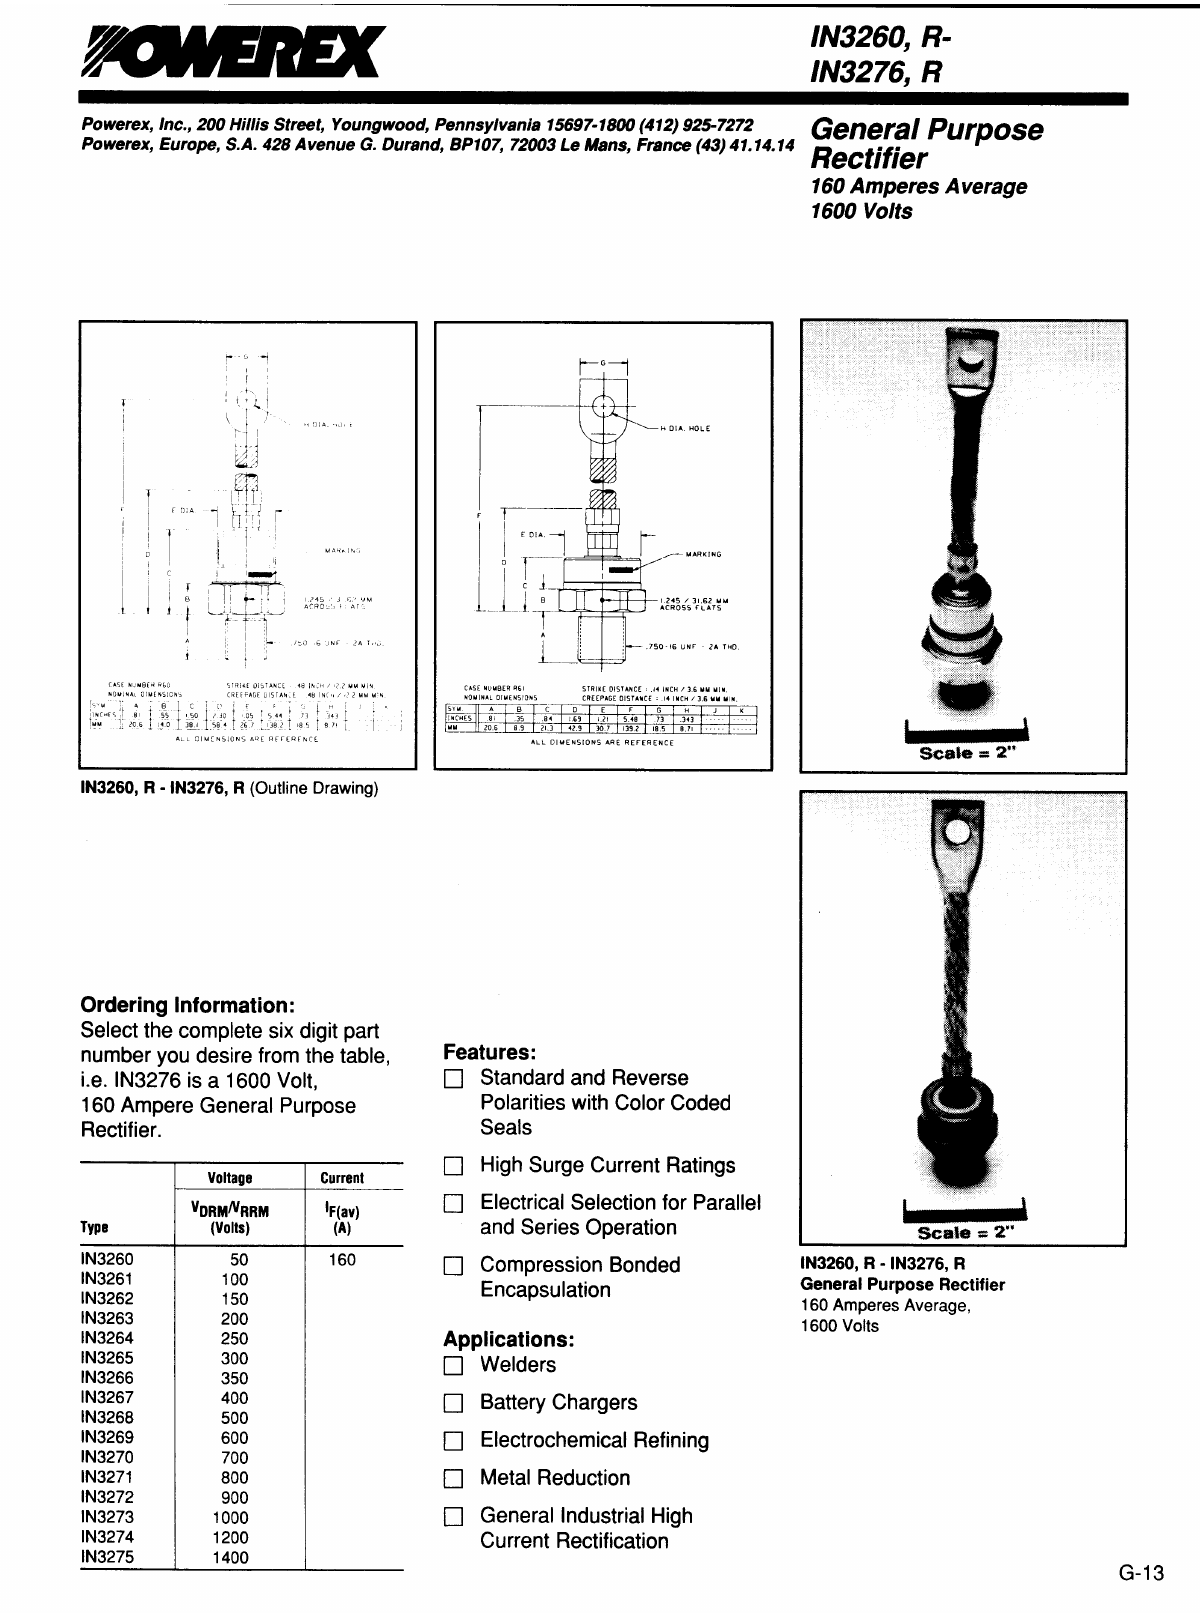 R-IN3264 datasheet